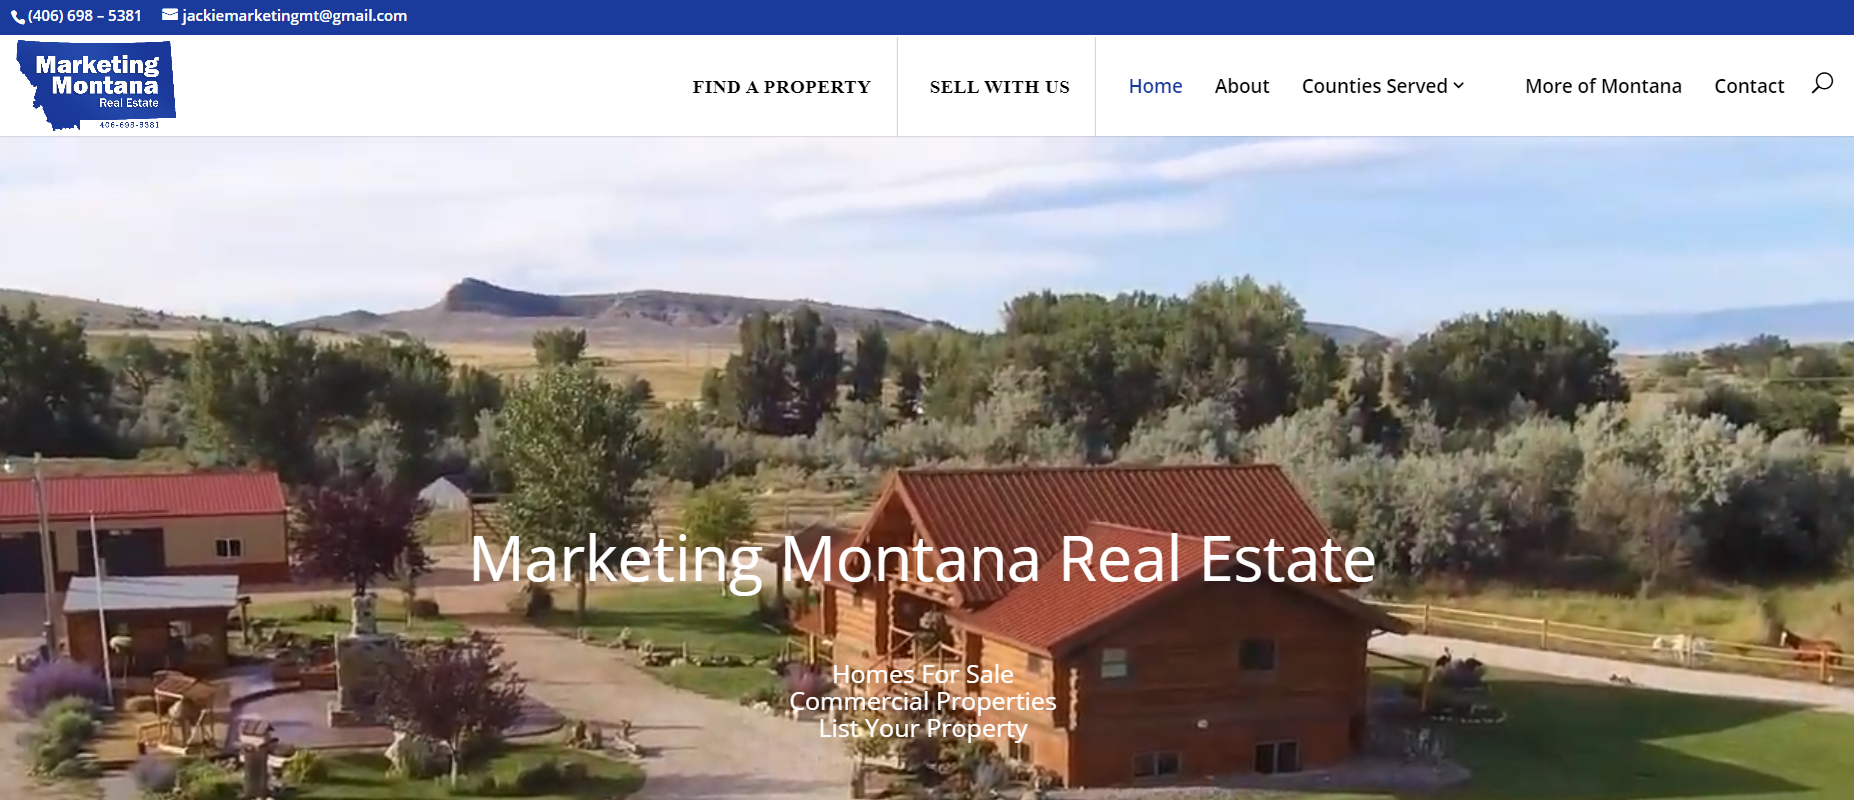 Marketing Montana website design by SkyPoint Studios